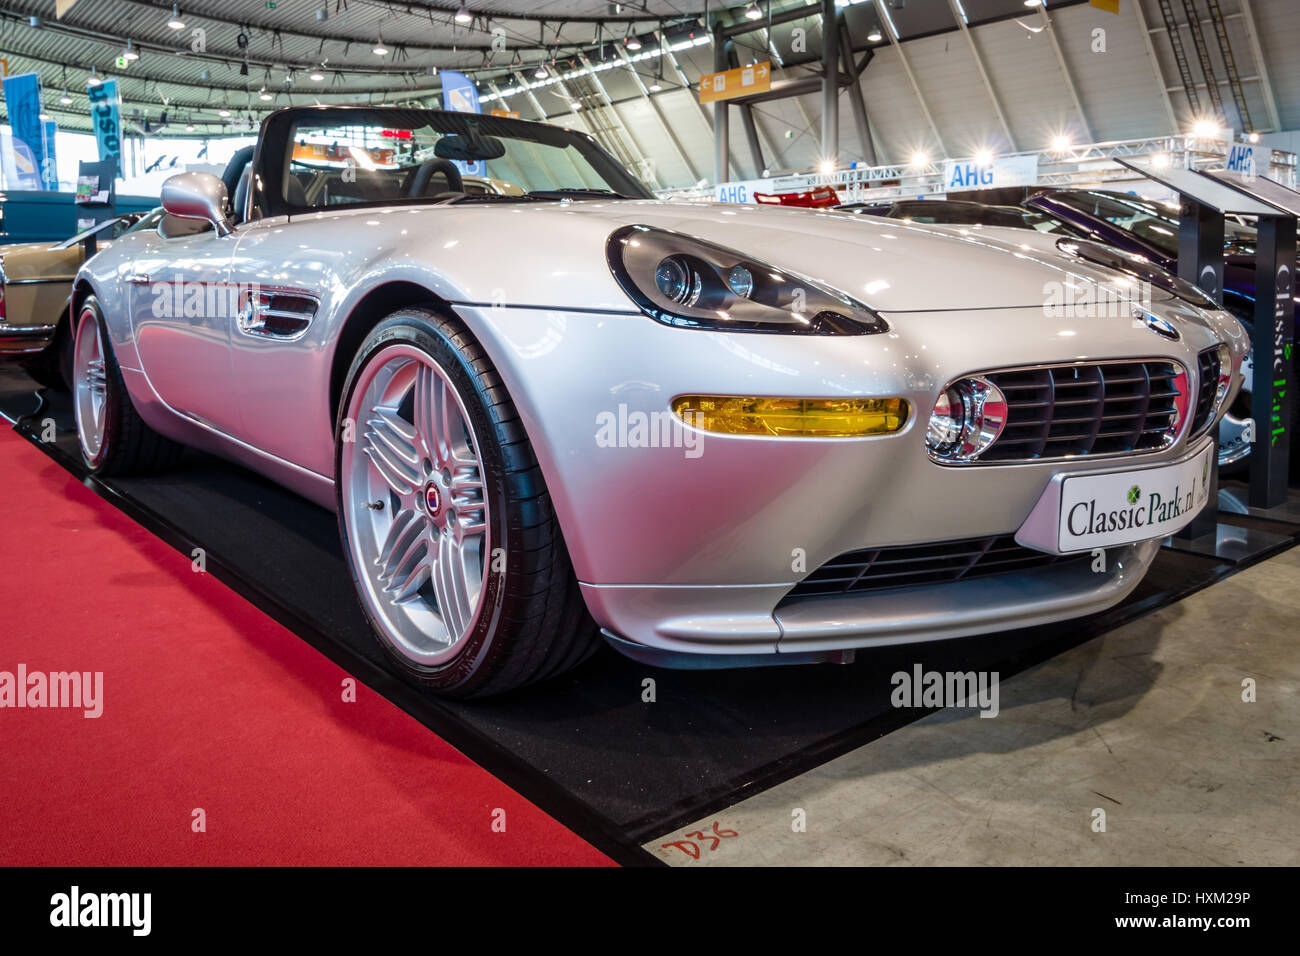 stuttgart germany march 02 2017 sports car bmw z8. Black Bedroom Furniture Sets. Home Design Ideas